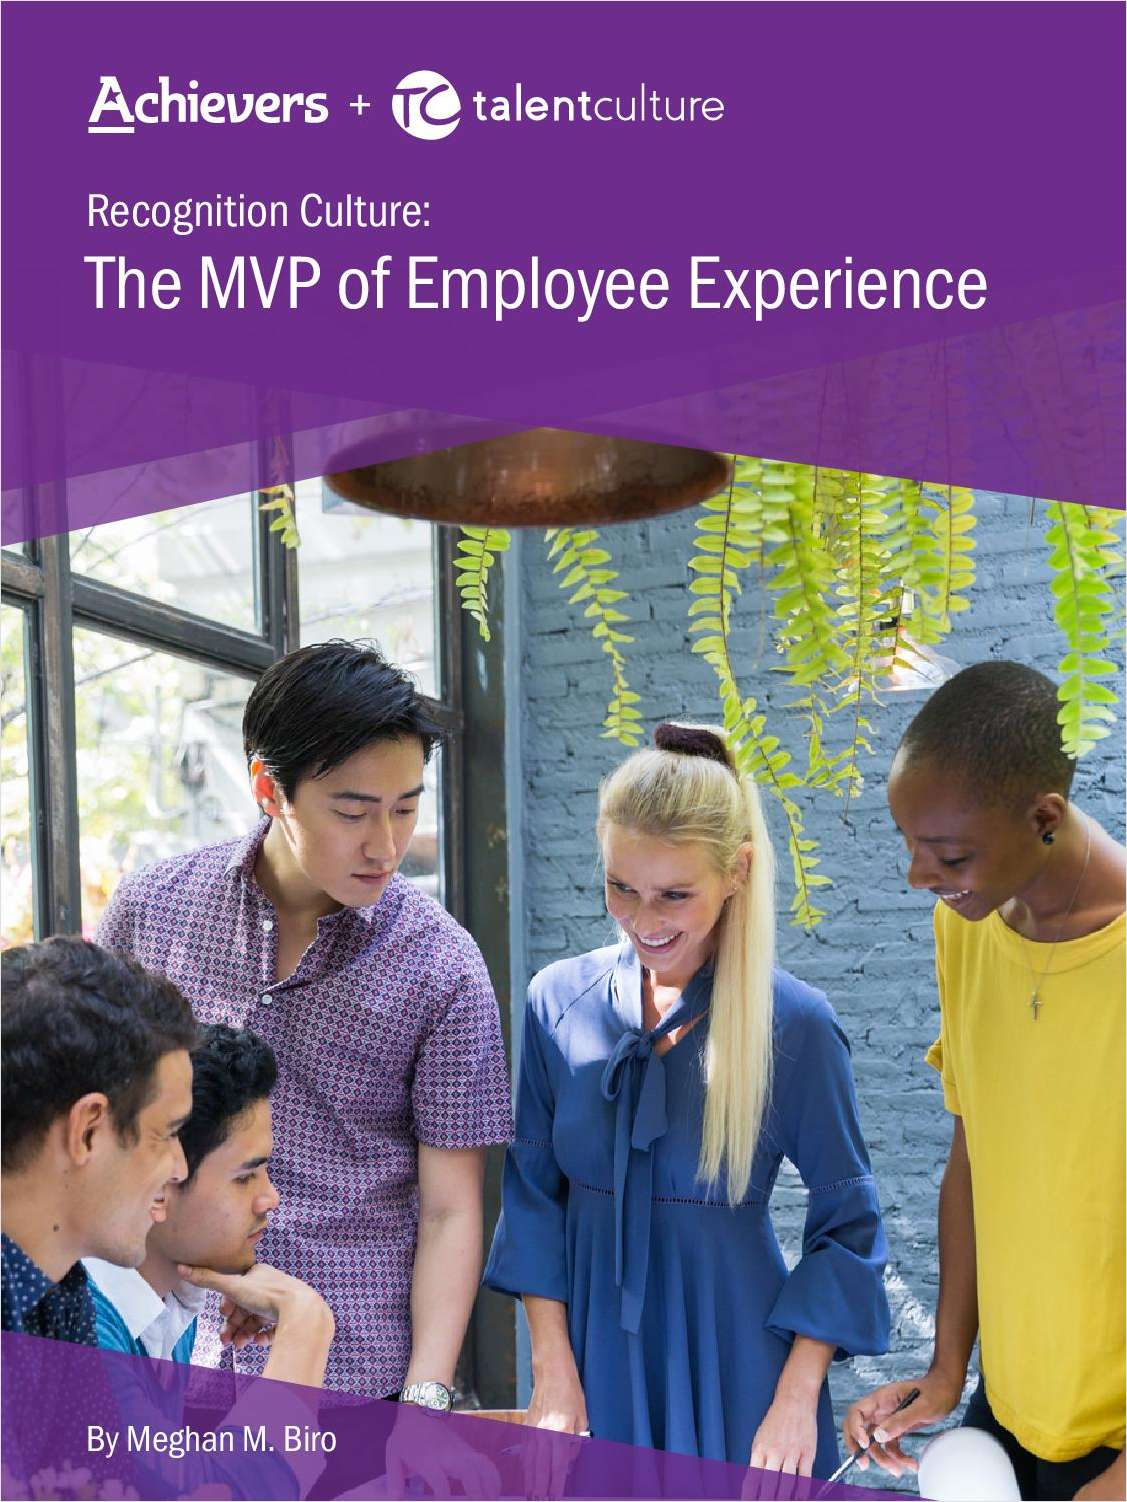 Recognition Culture: The MVP of Employee Experience